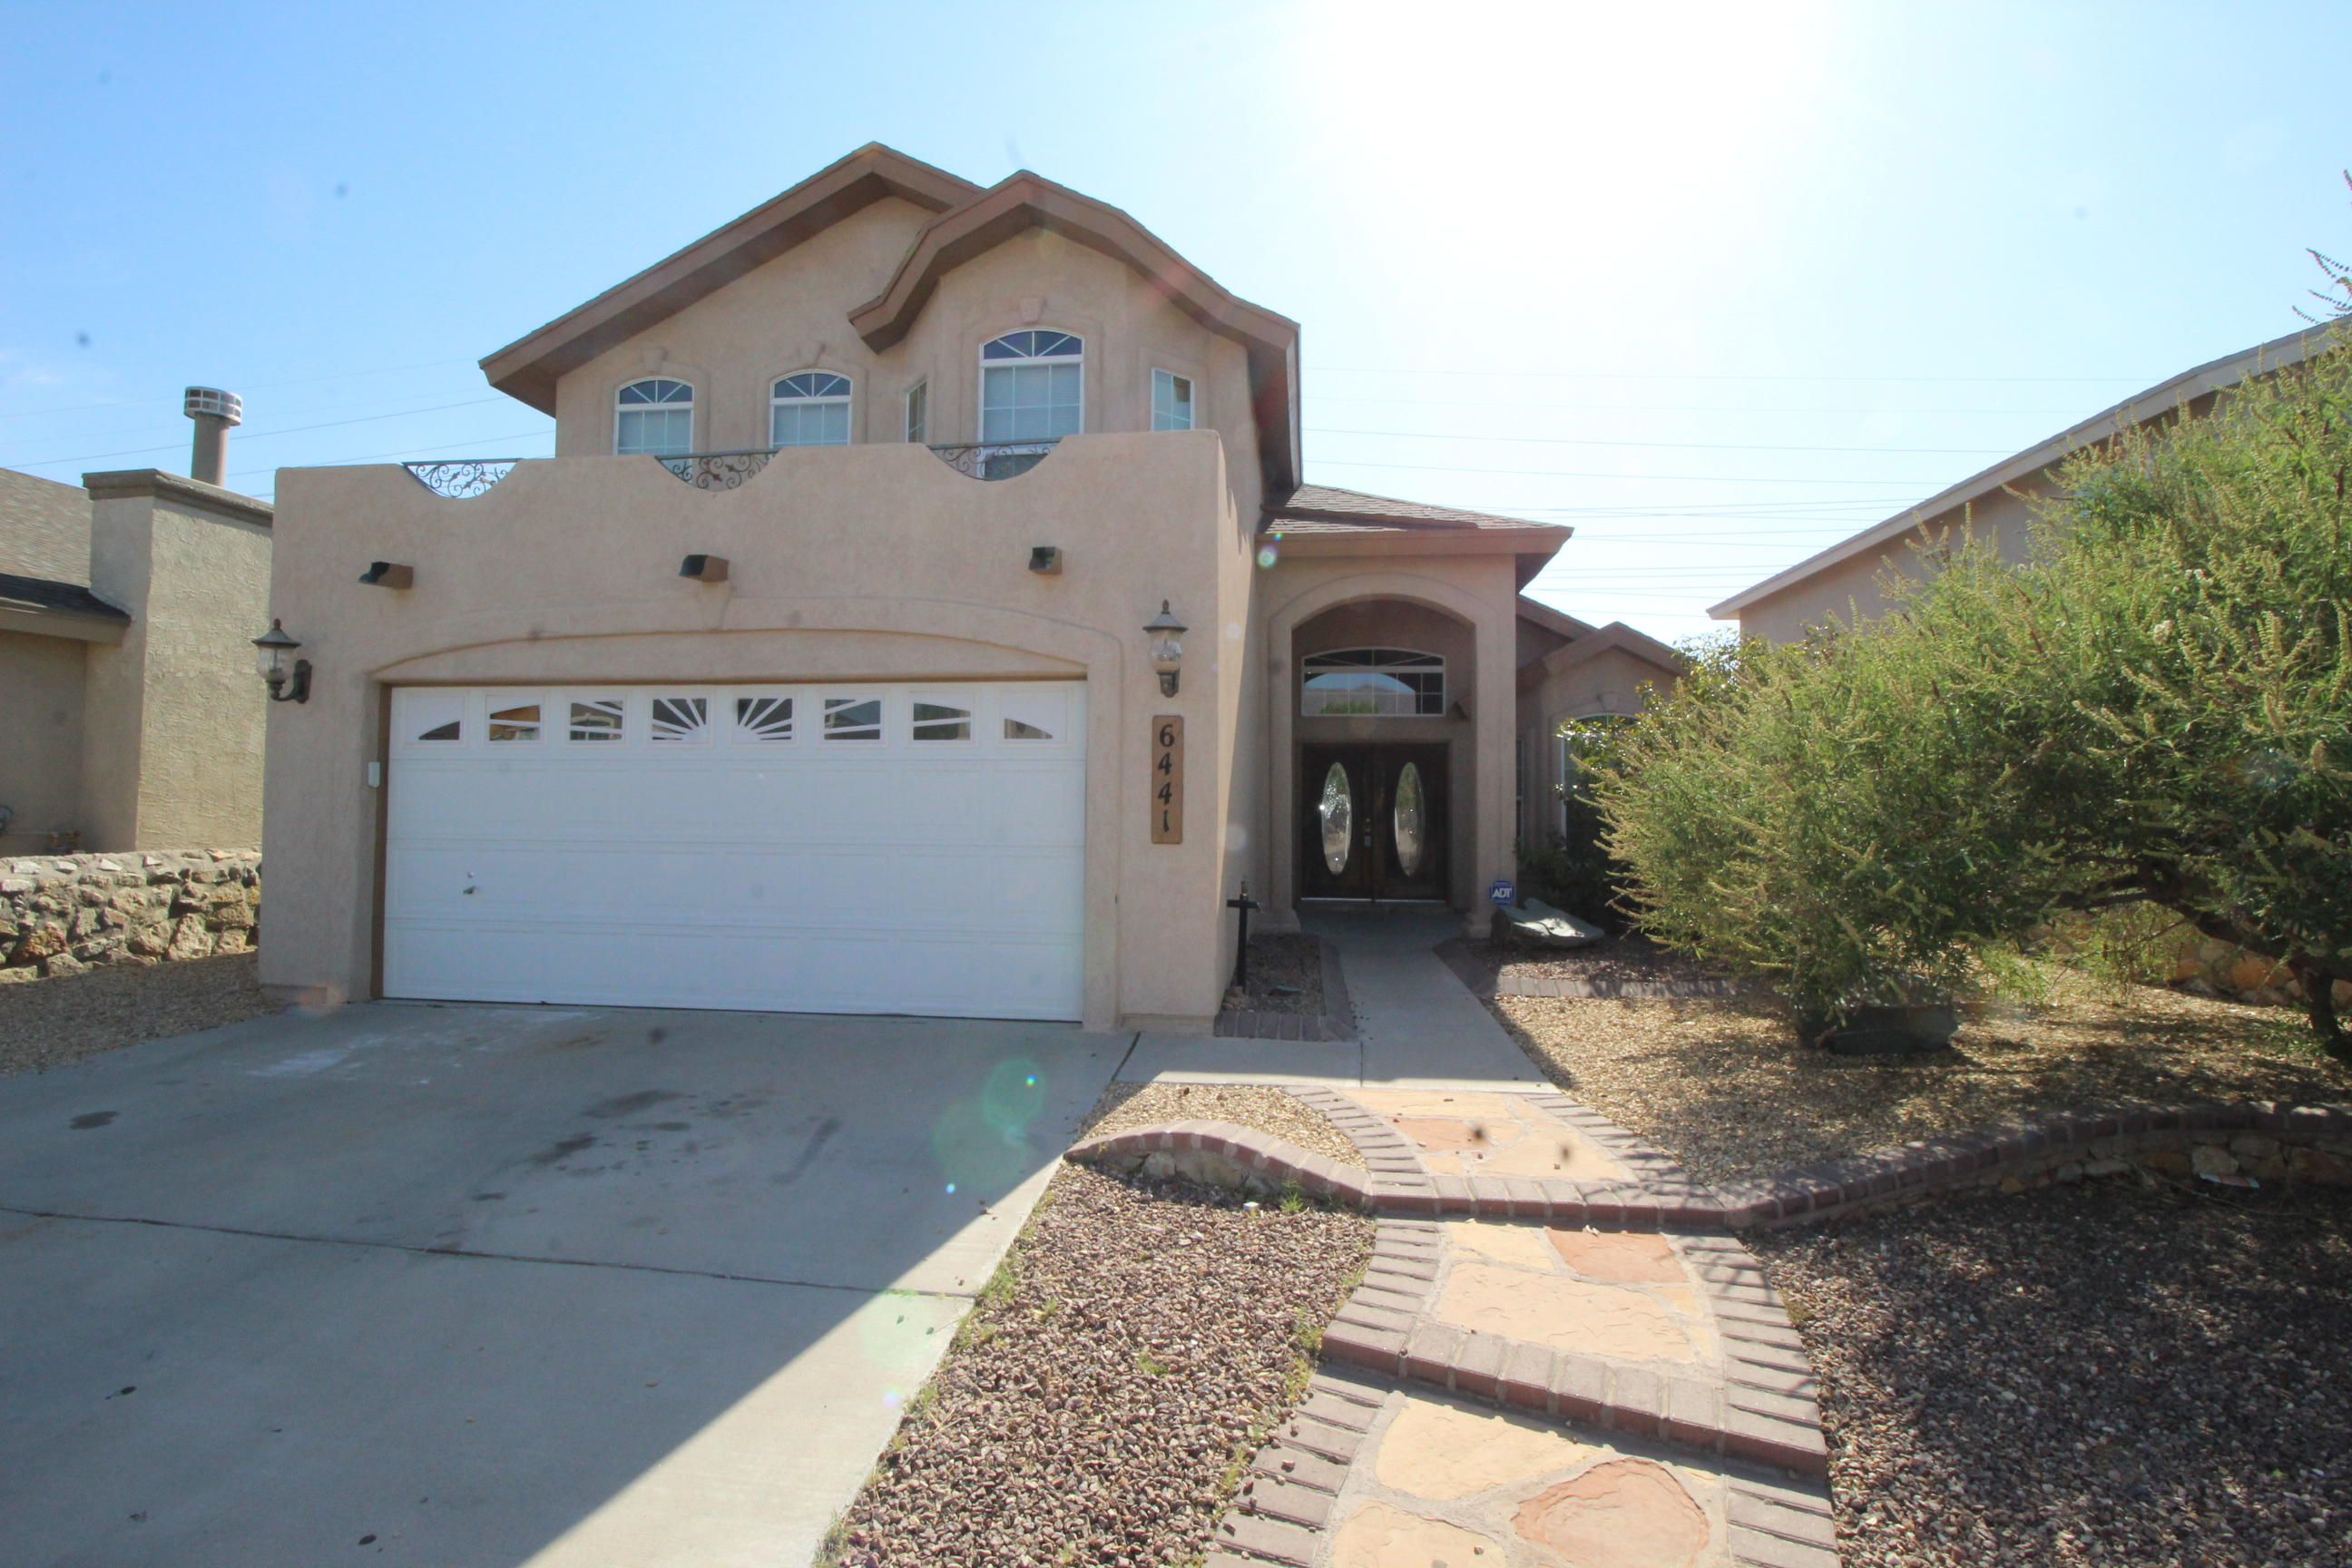 6441 BERRINGER, El Paso, Texas 79932, 4 Bedrooms Bedrooms, ,3 BathroomsBathrooms,Residential,For sale,BERRINGER,802080